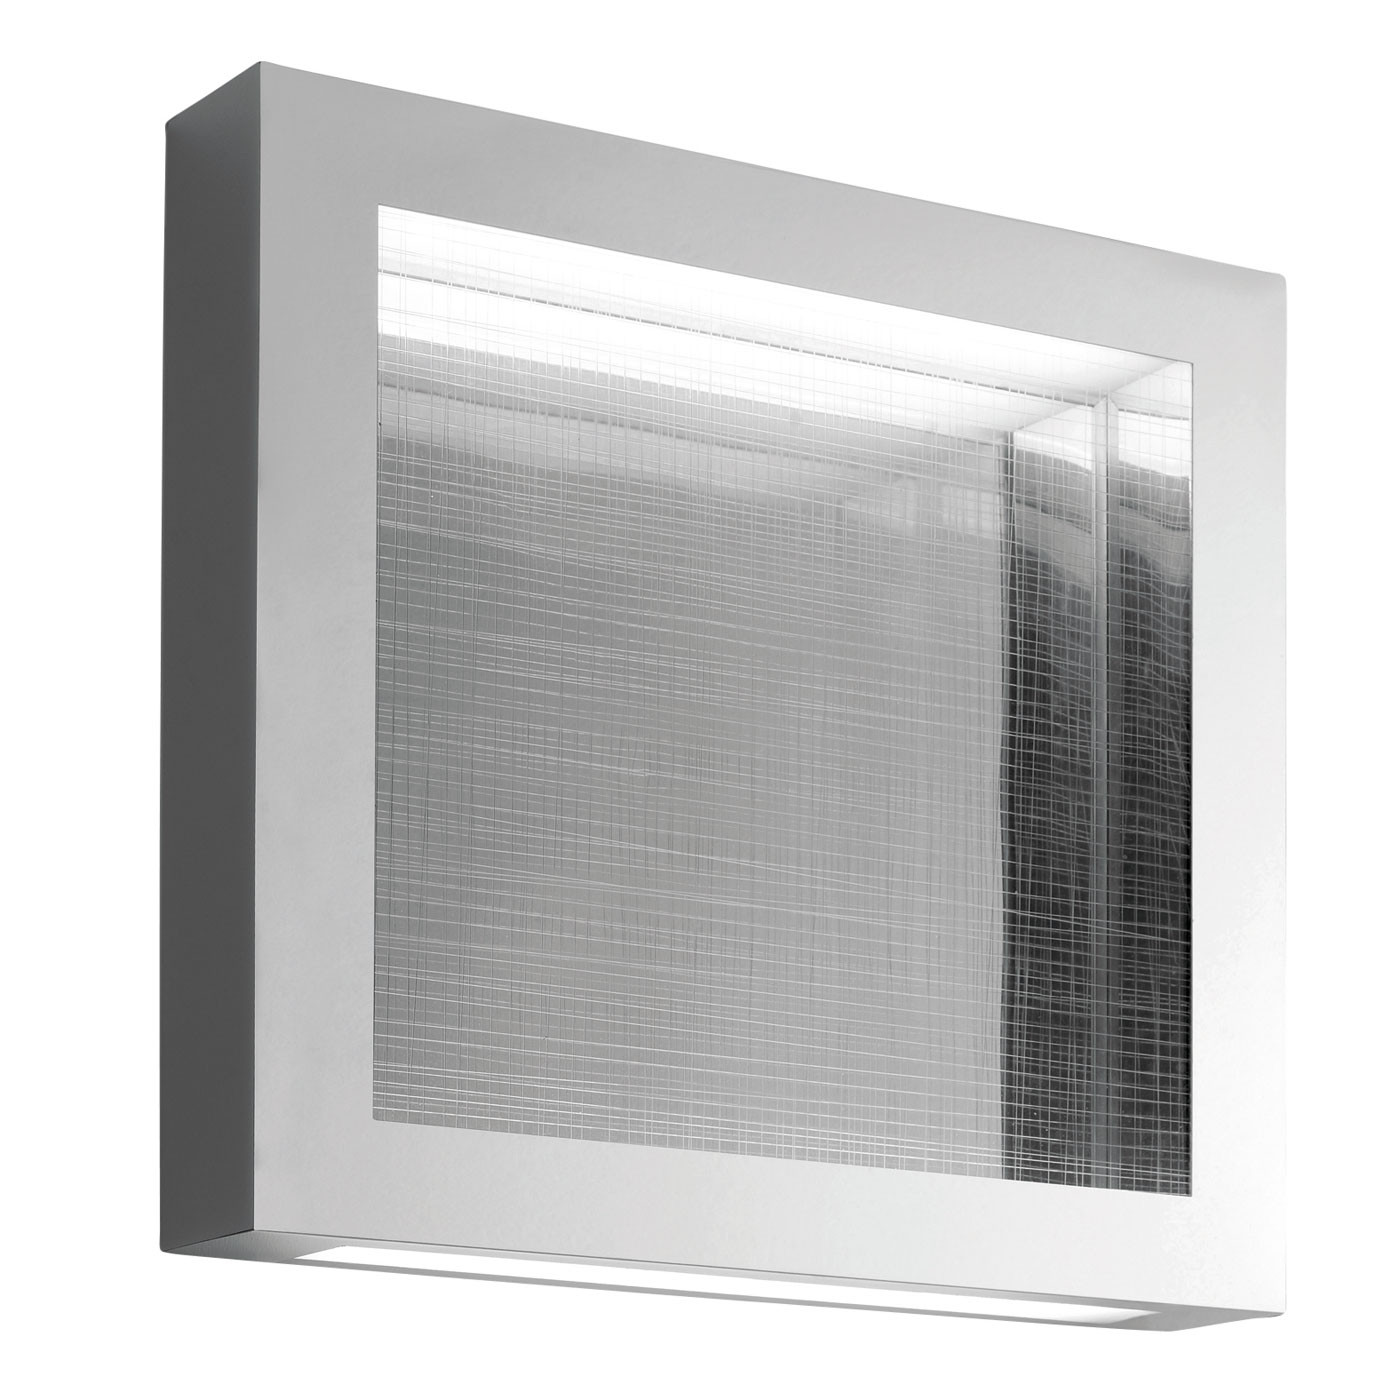 Artemide Altrove 600 LED Wall/Ceiling